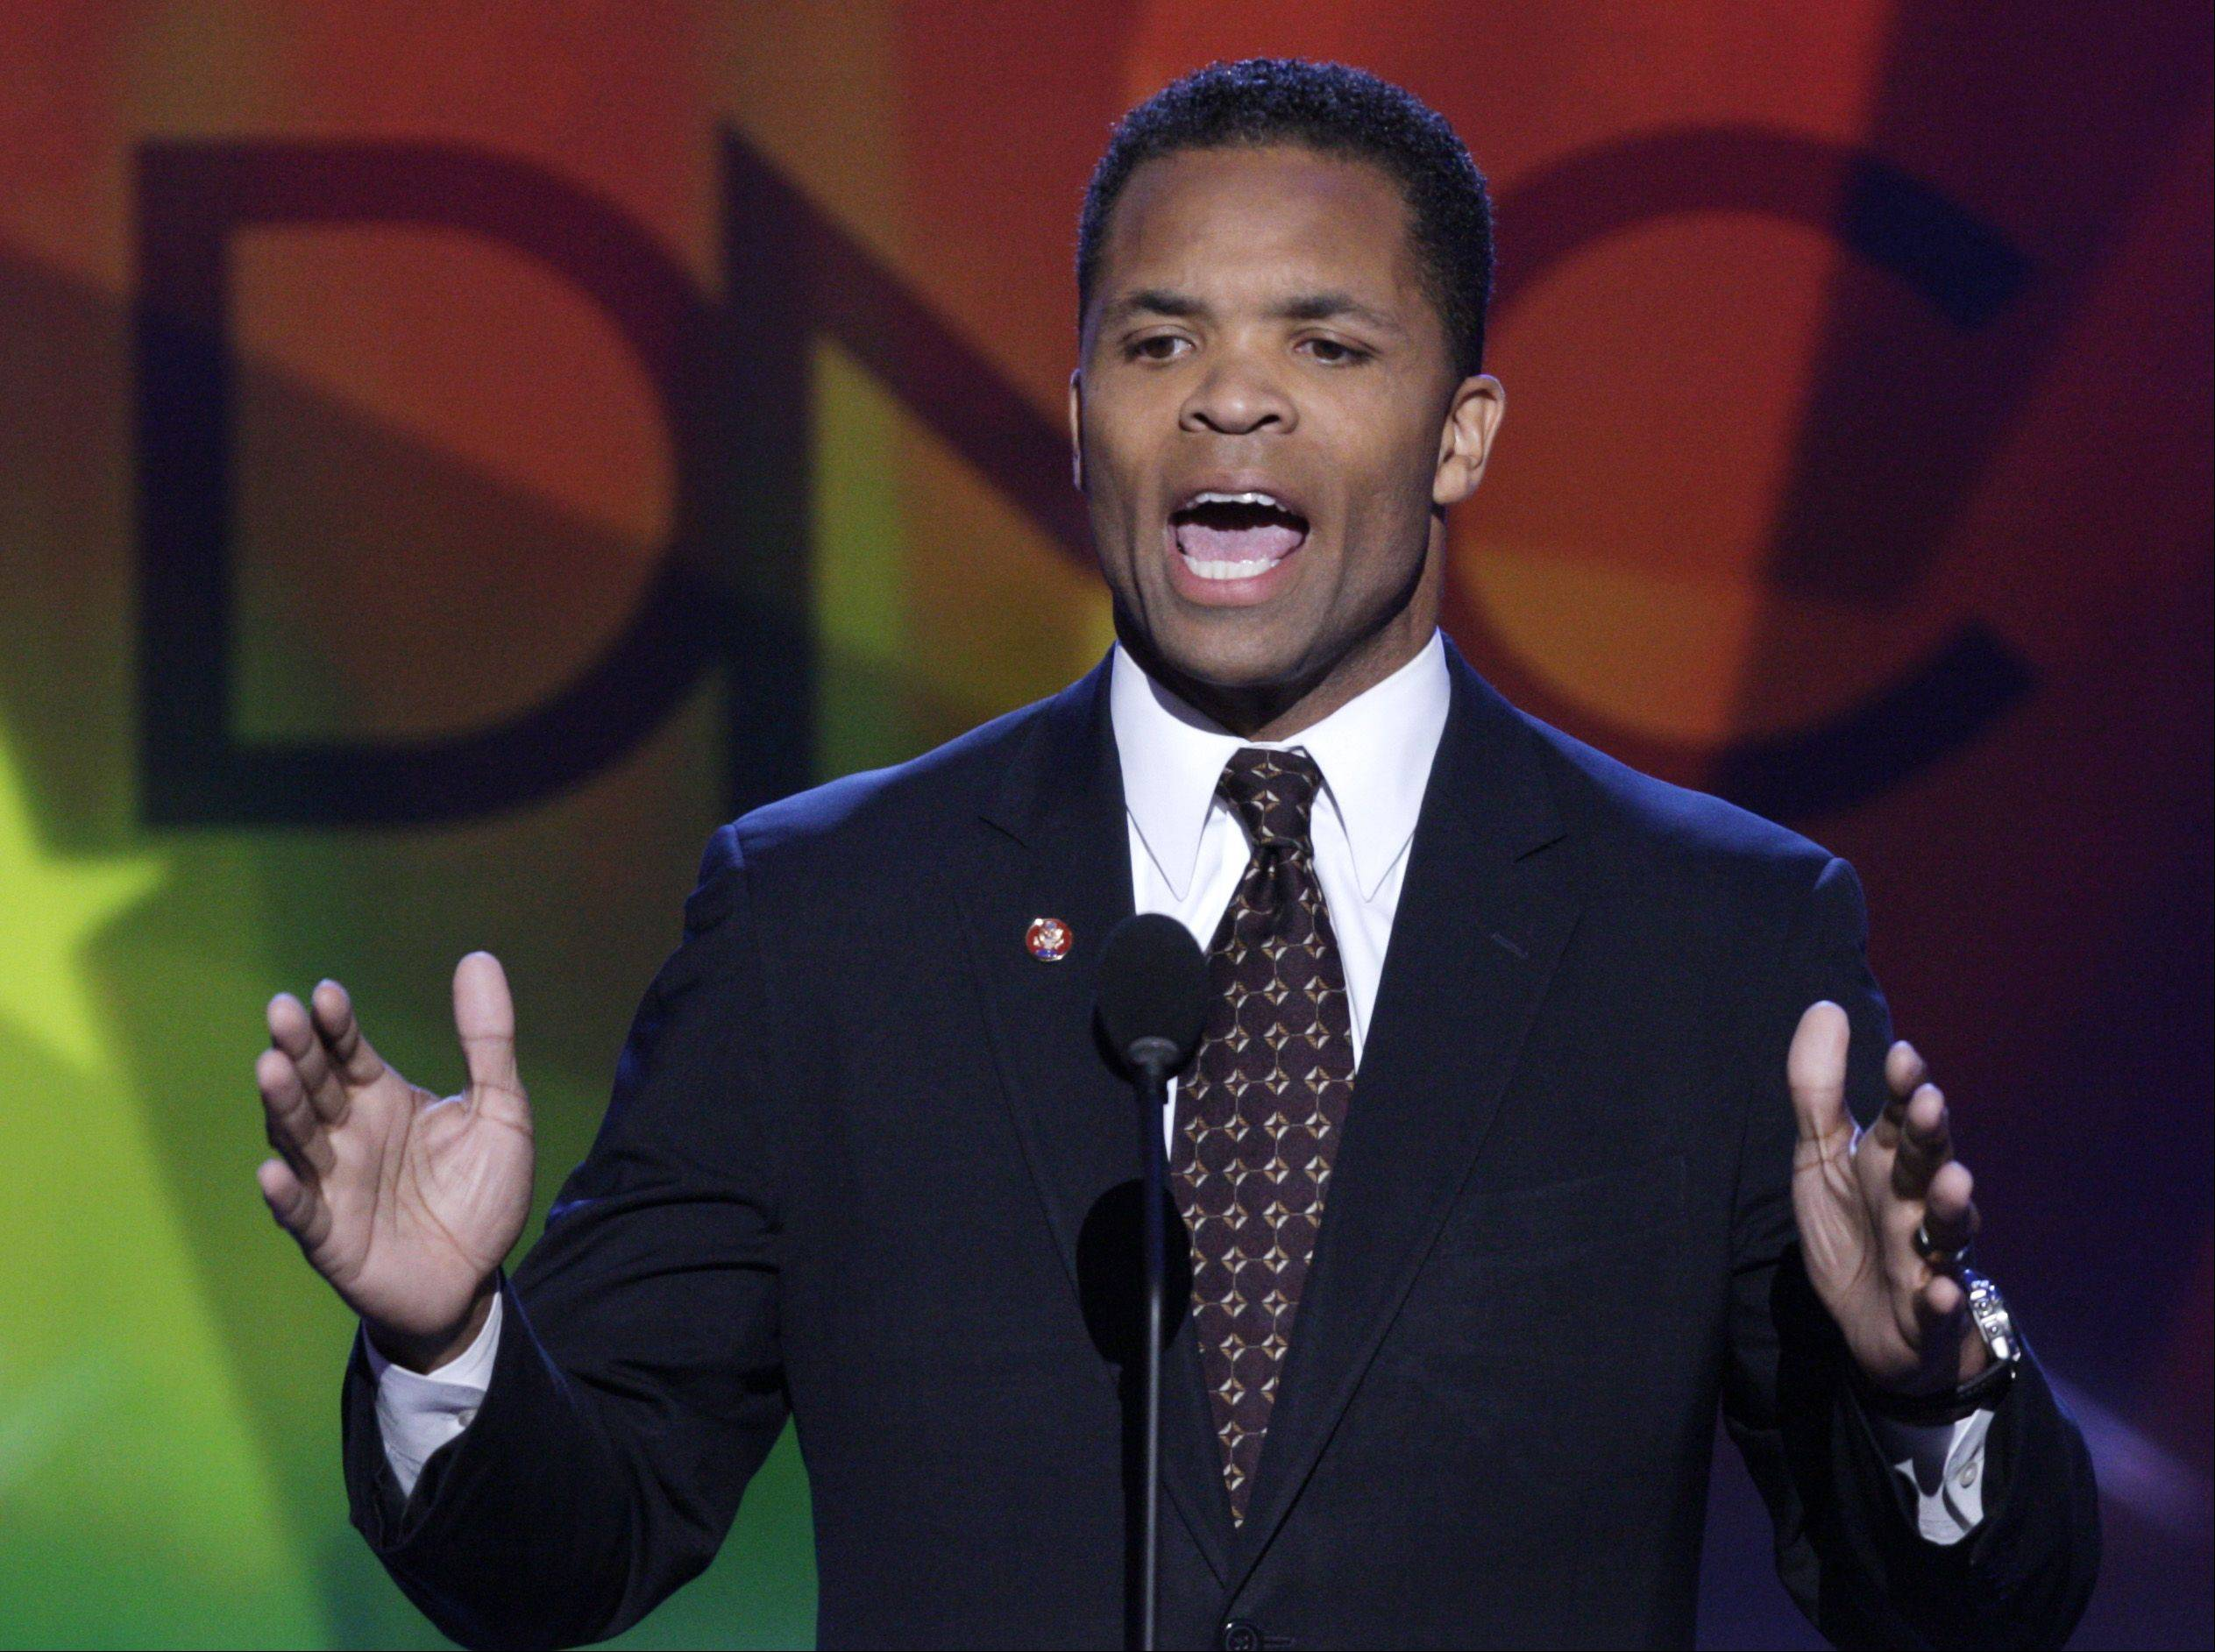 Once a rising star, Jesse Jackson Jr. spoke at the 2008 Democratic National Convention in Denver.